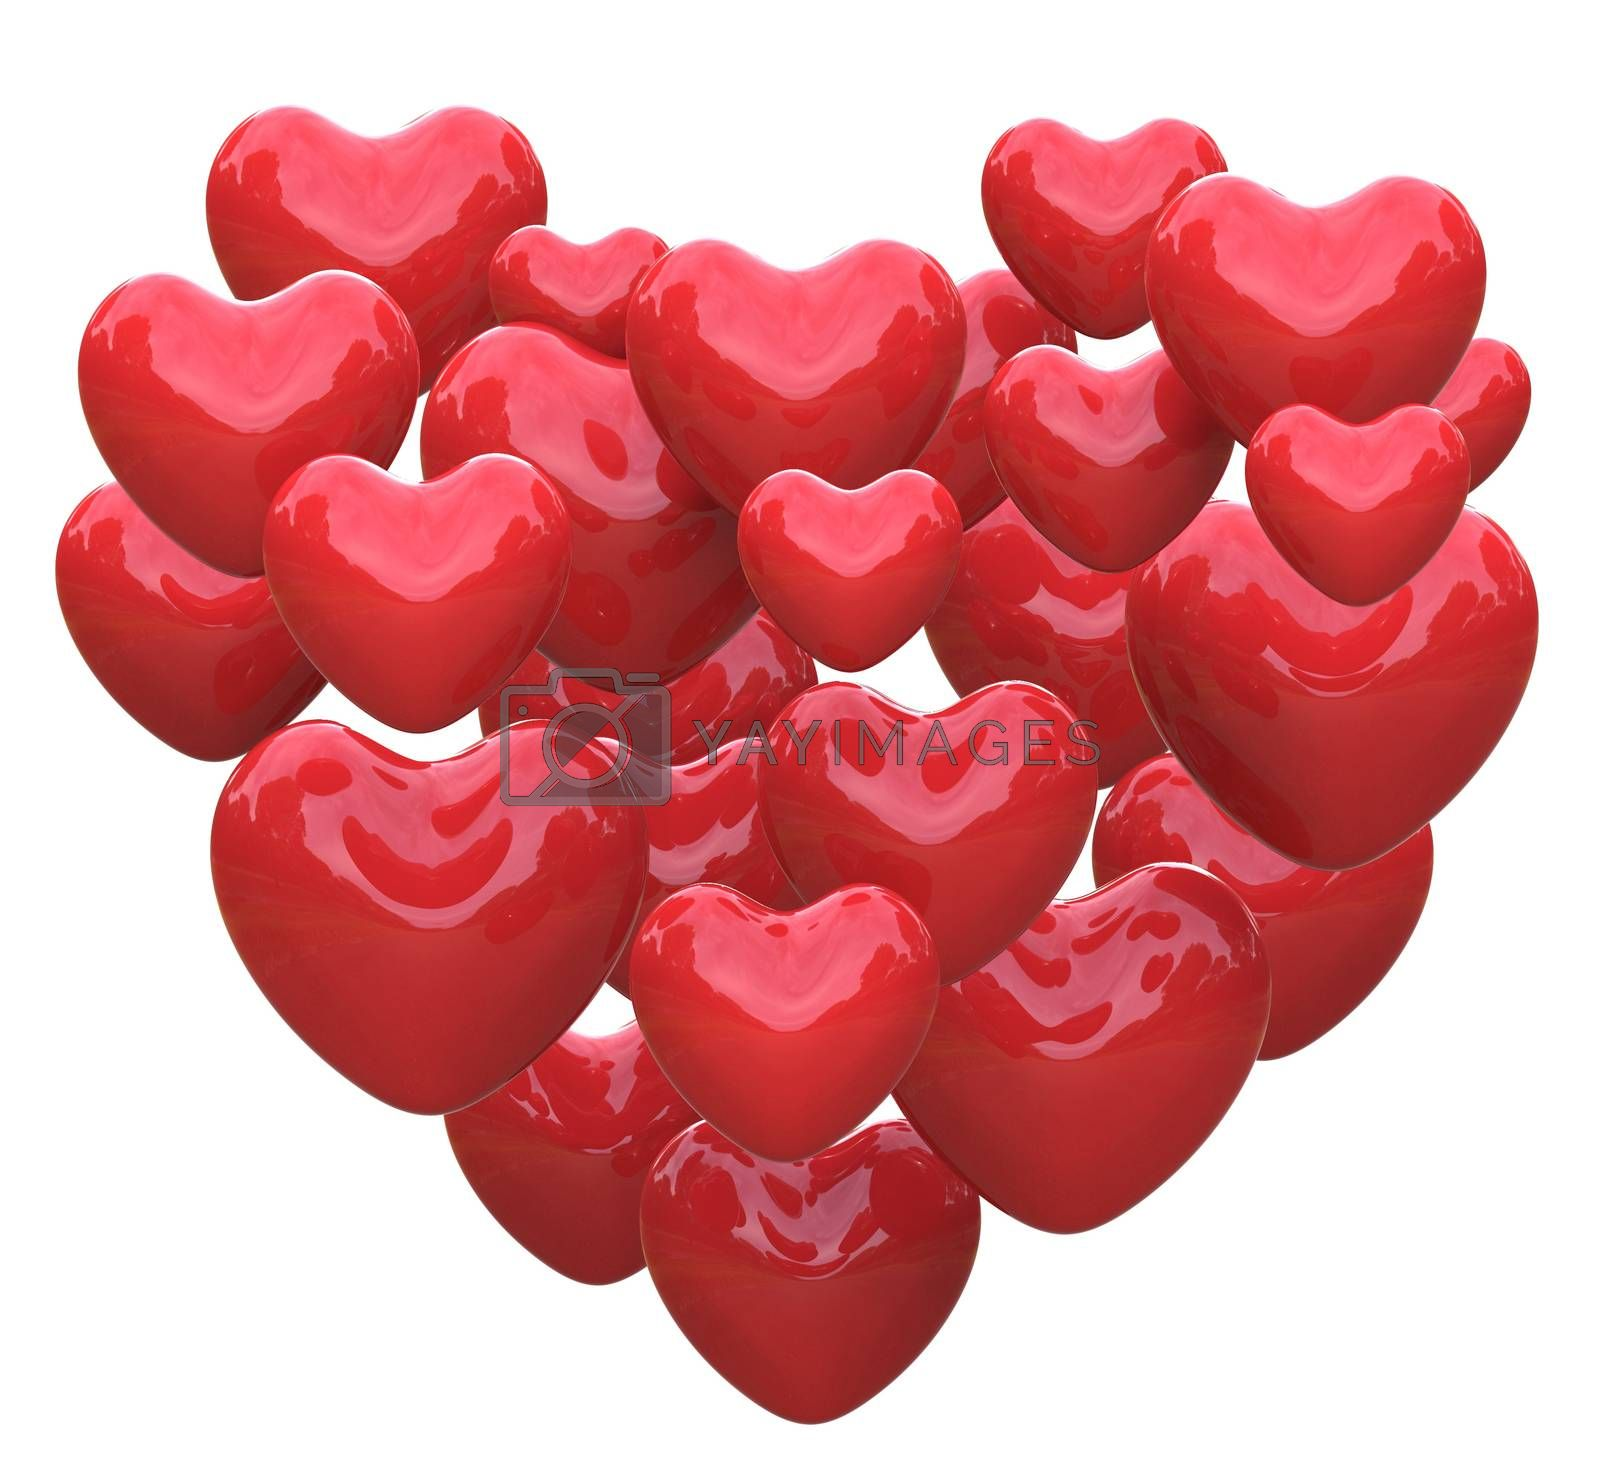 Heart Made With Hearts Showing Romance Love And Passion